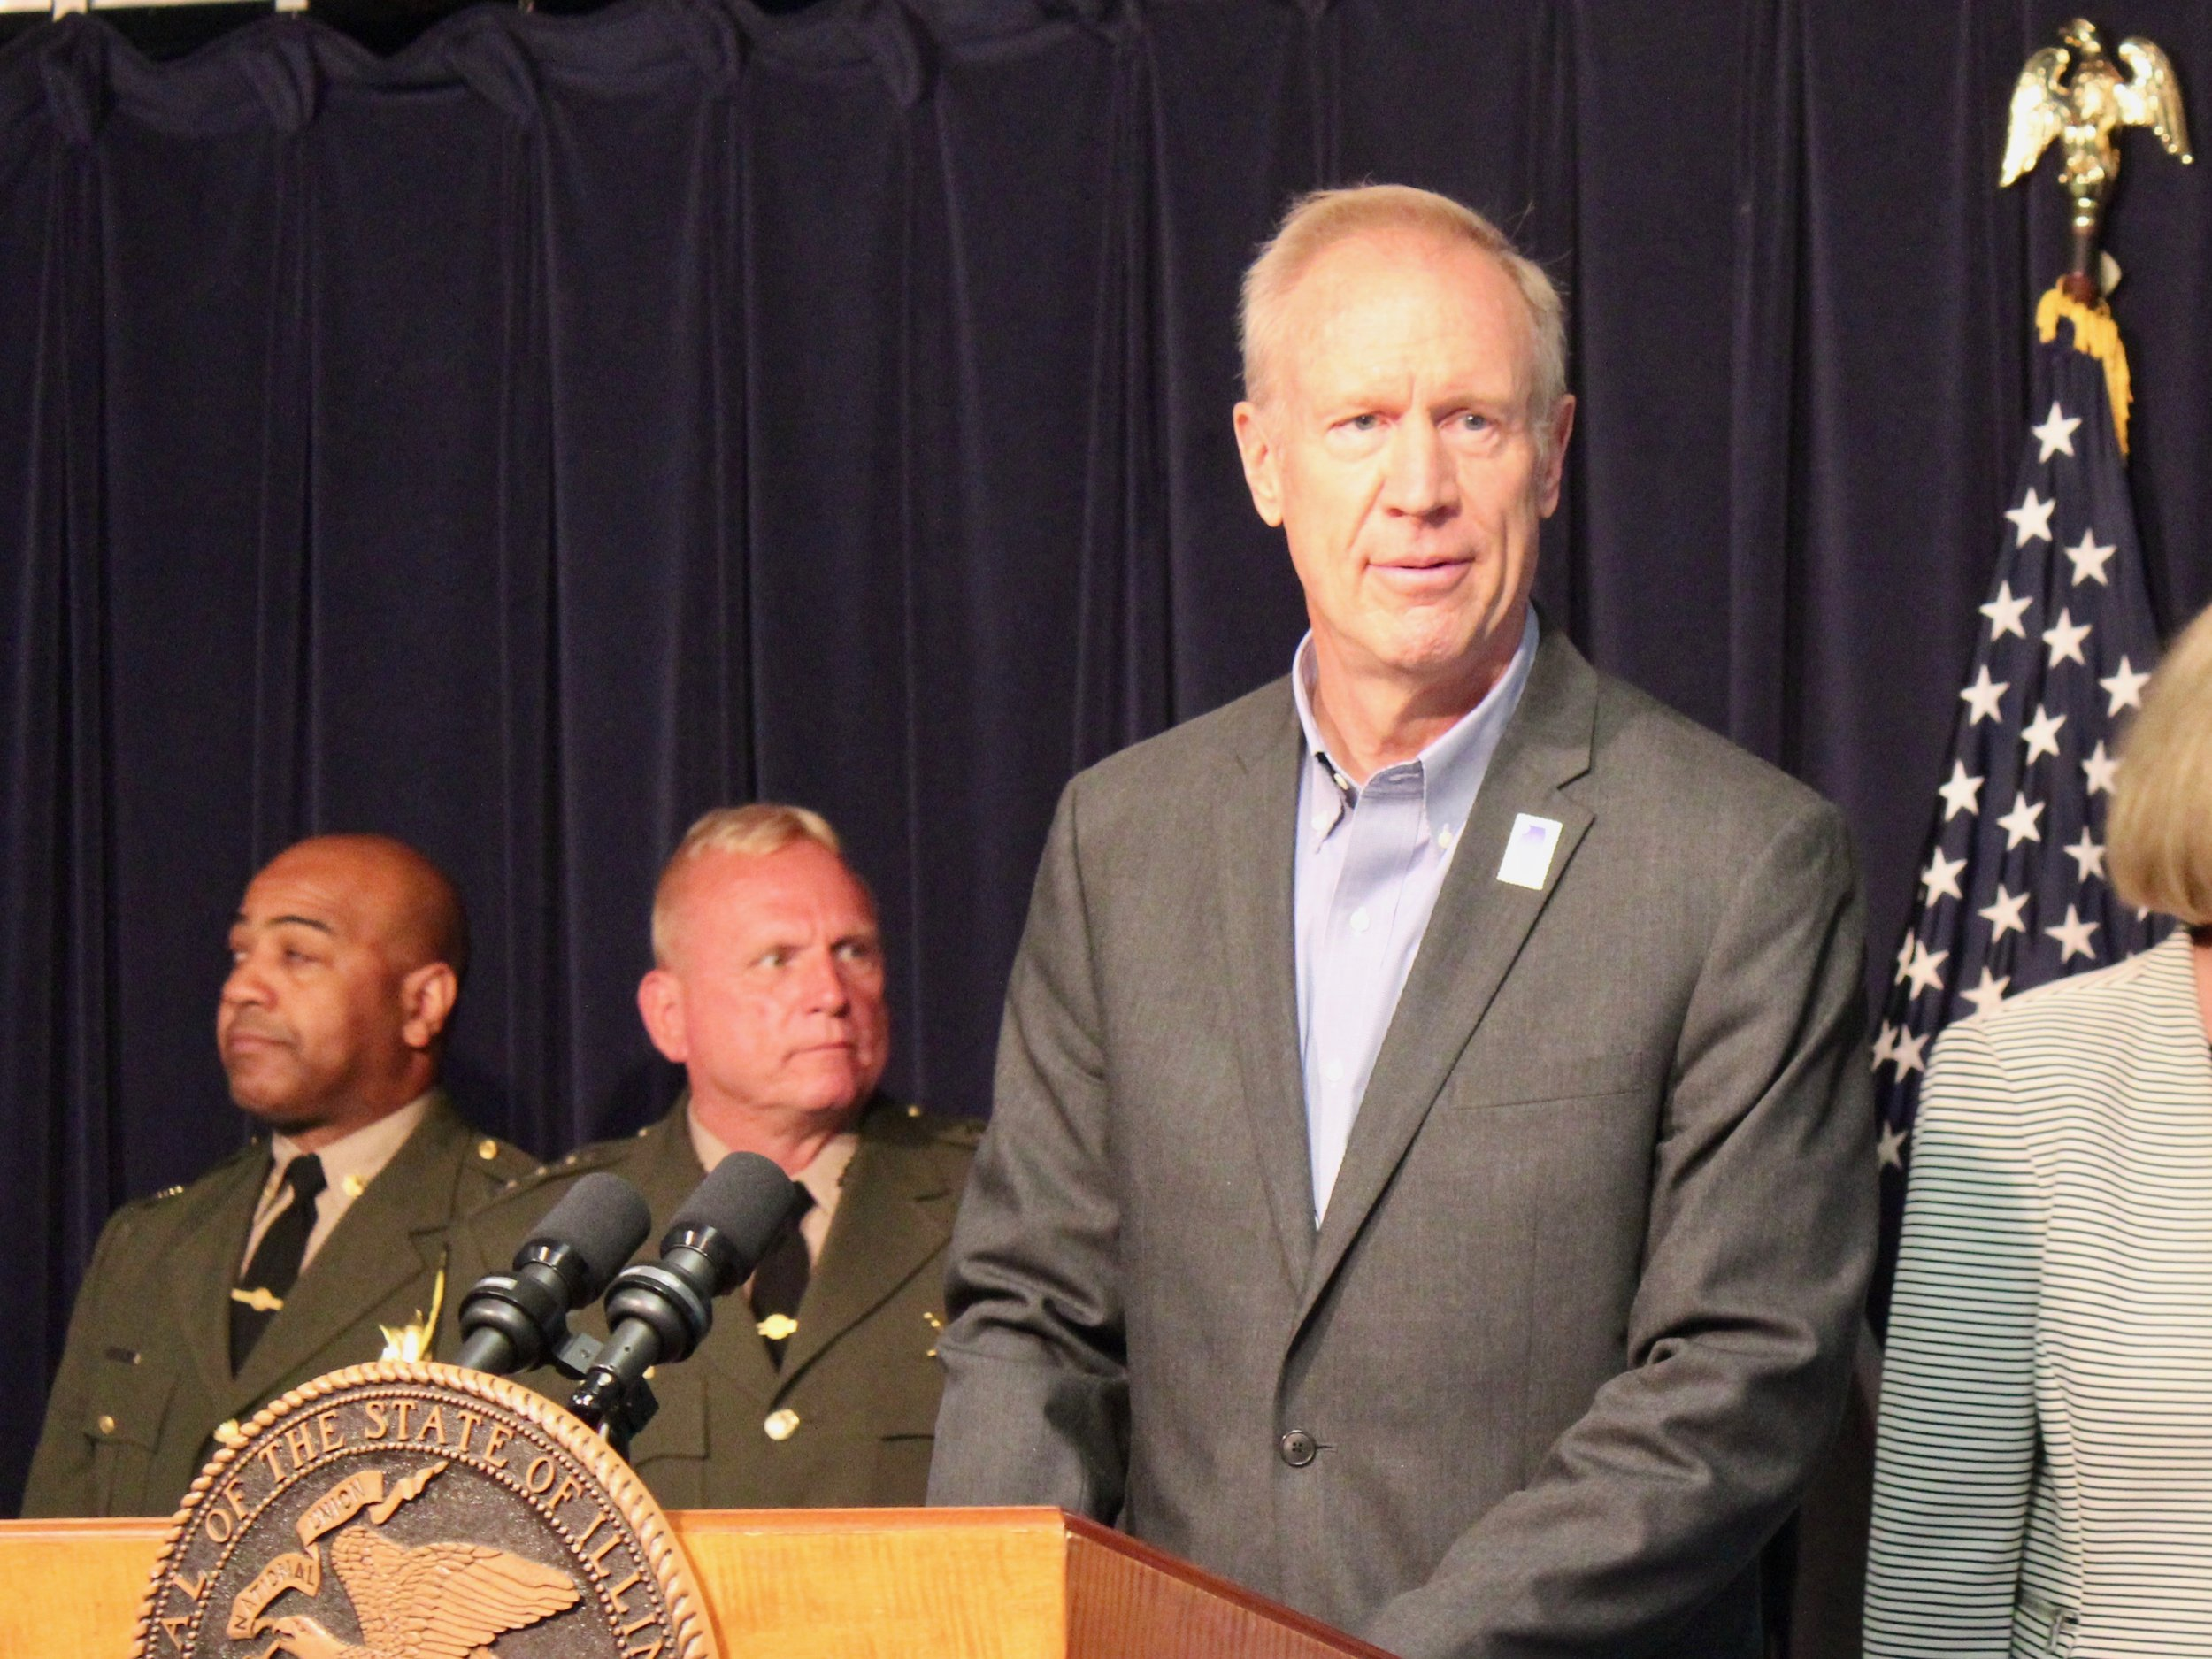 """""""We want to make sure there is no election tampering and no election fraud,"""" says Gov. Rauner. (One Illinois/Ted Cox)"""